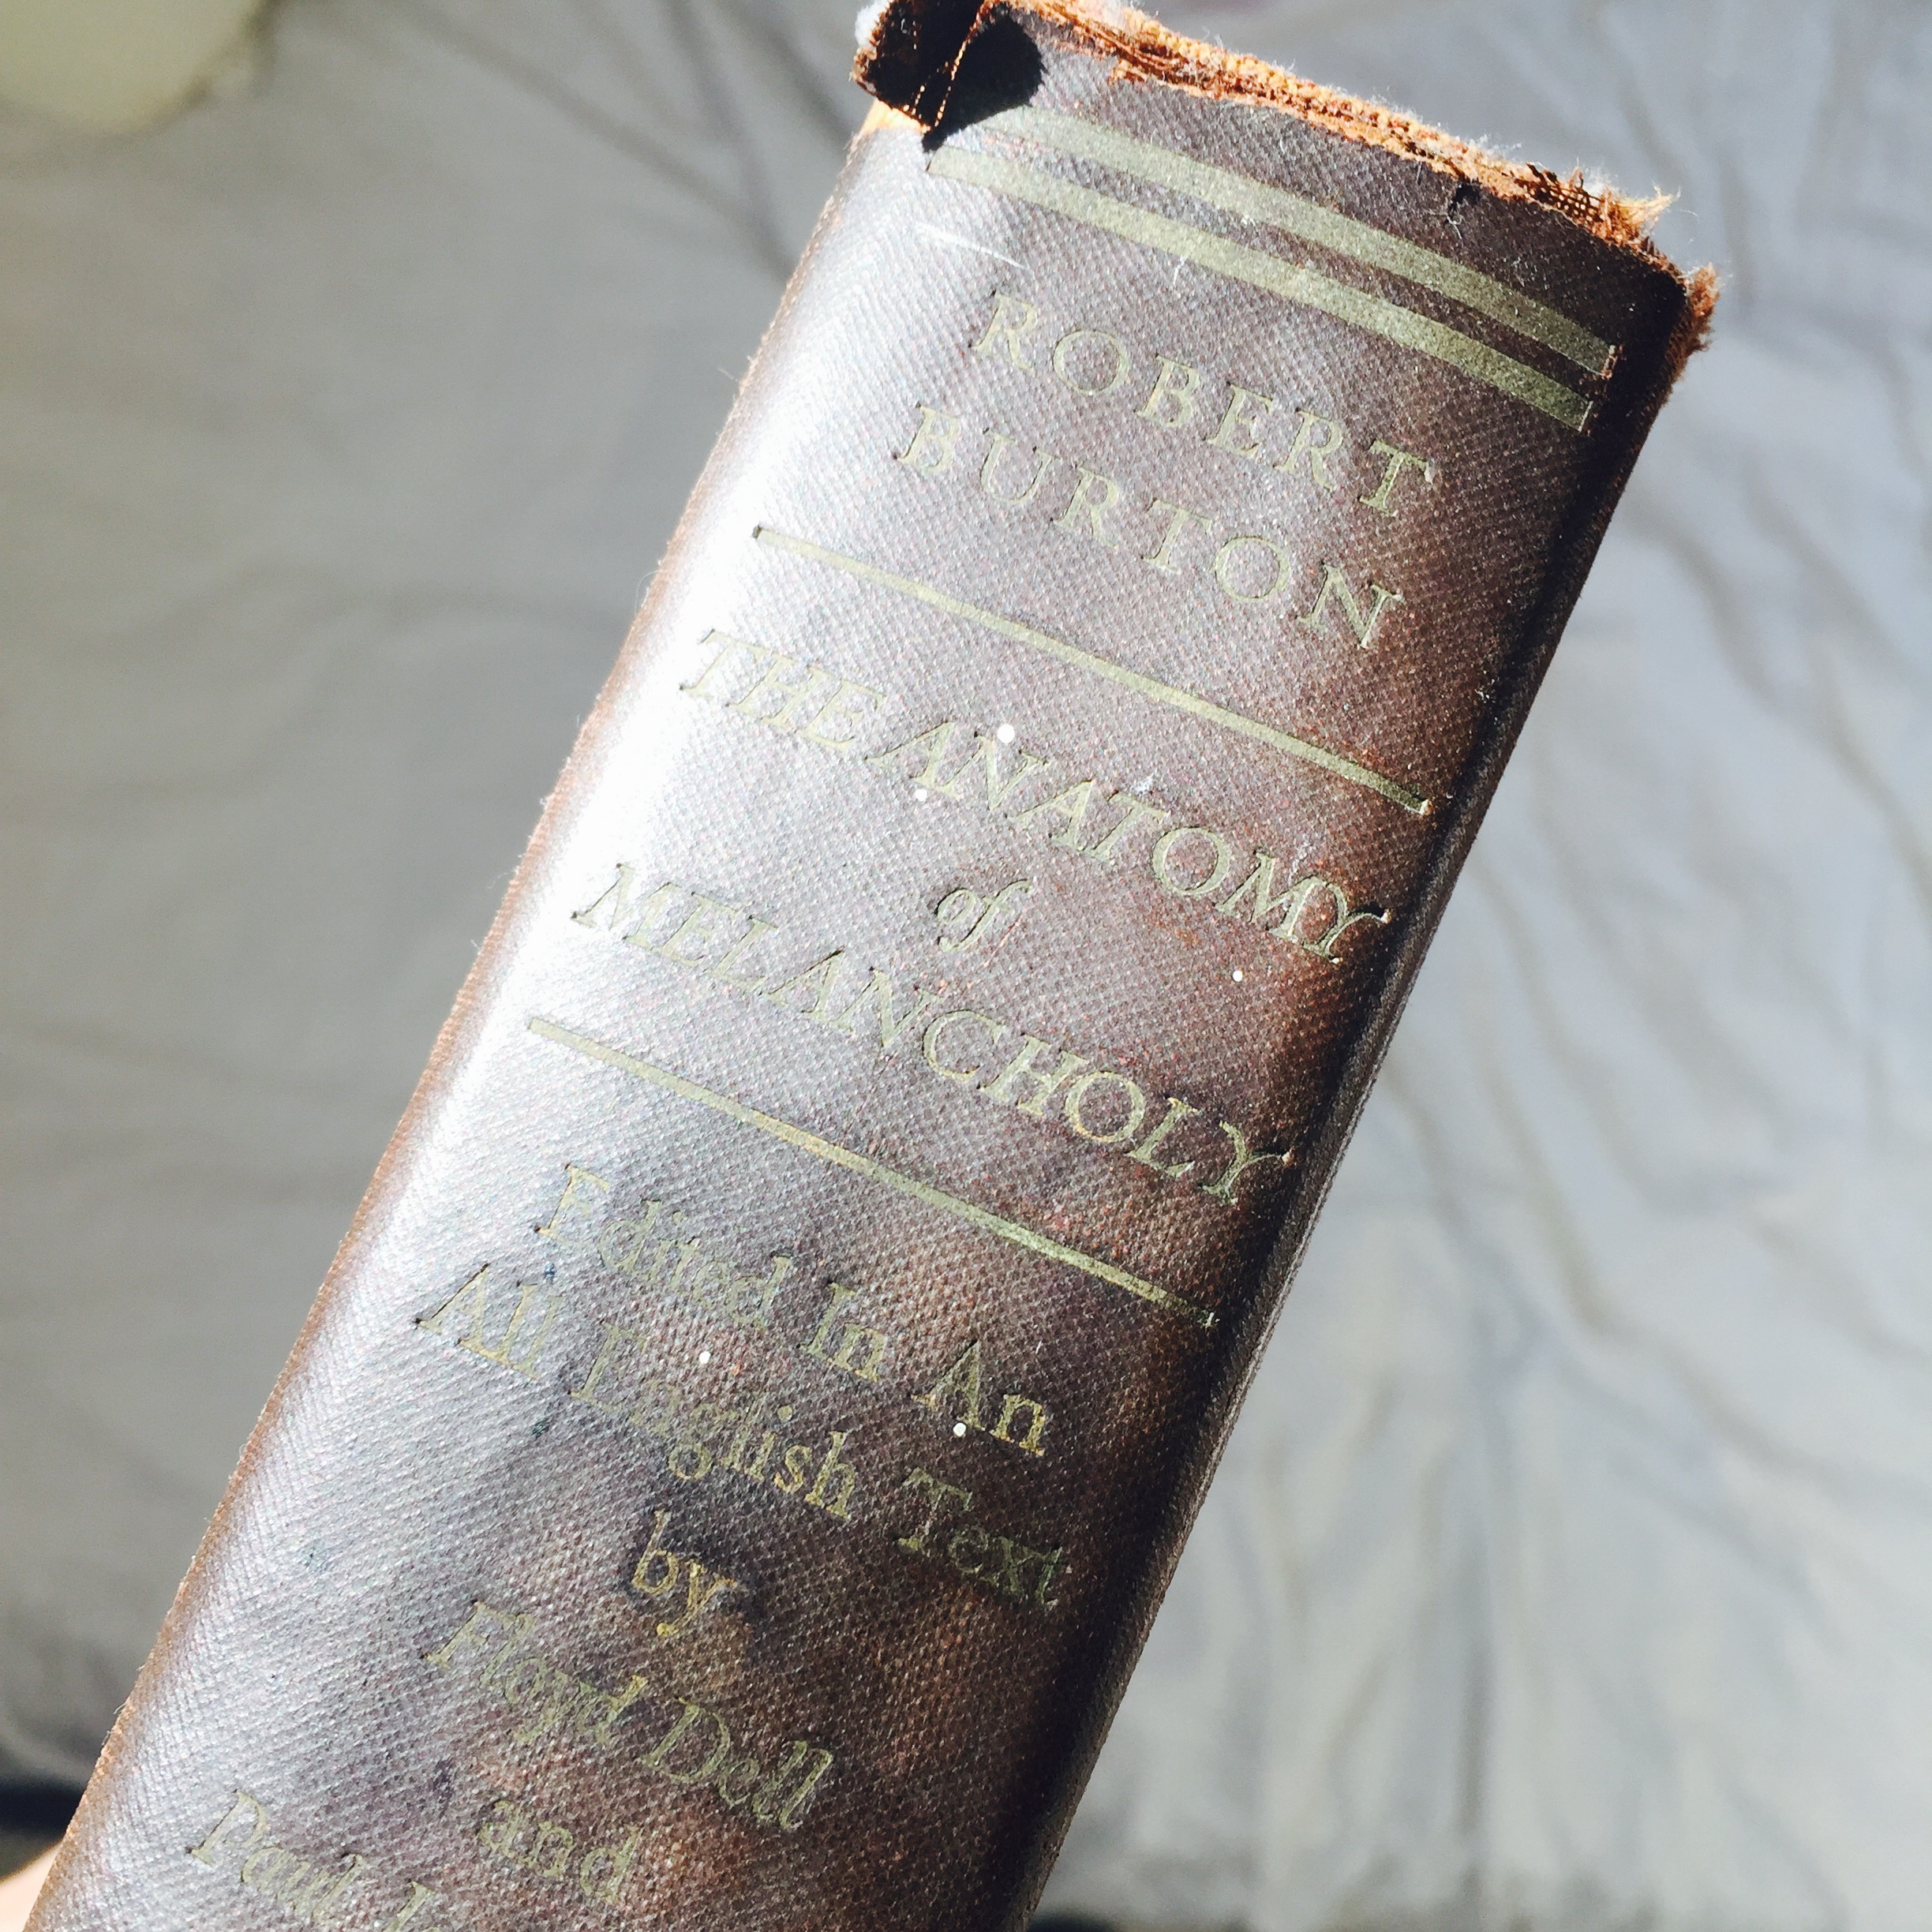 A close up of the spine of Robert Burton's Anatomy of Melancholy book.jpg